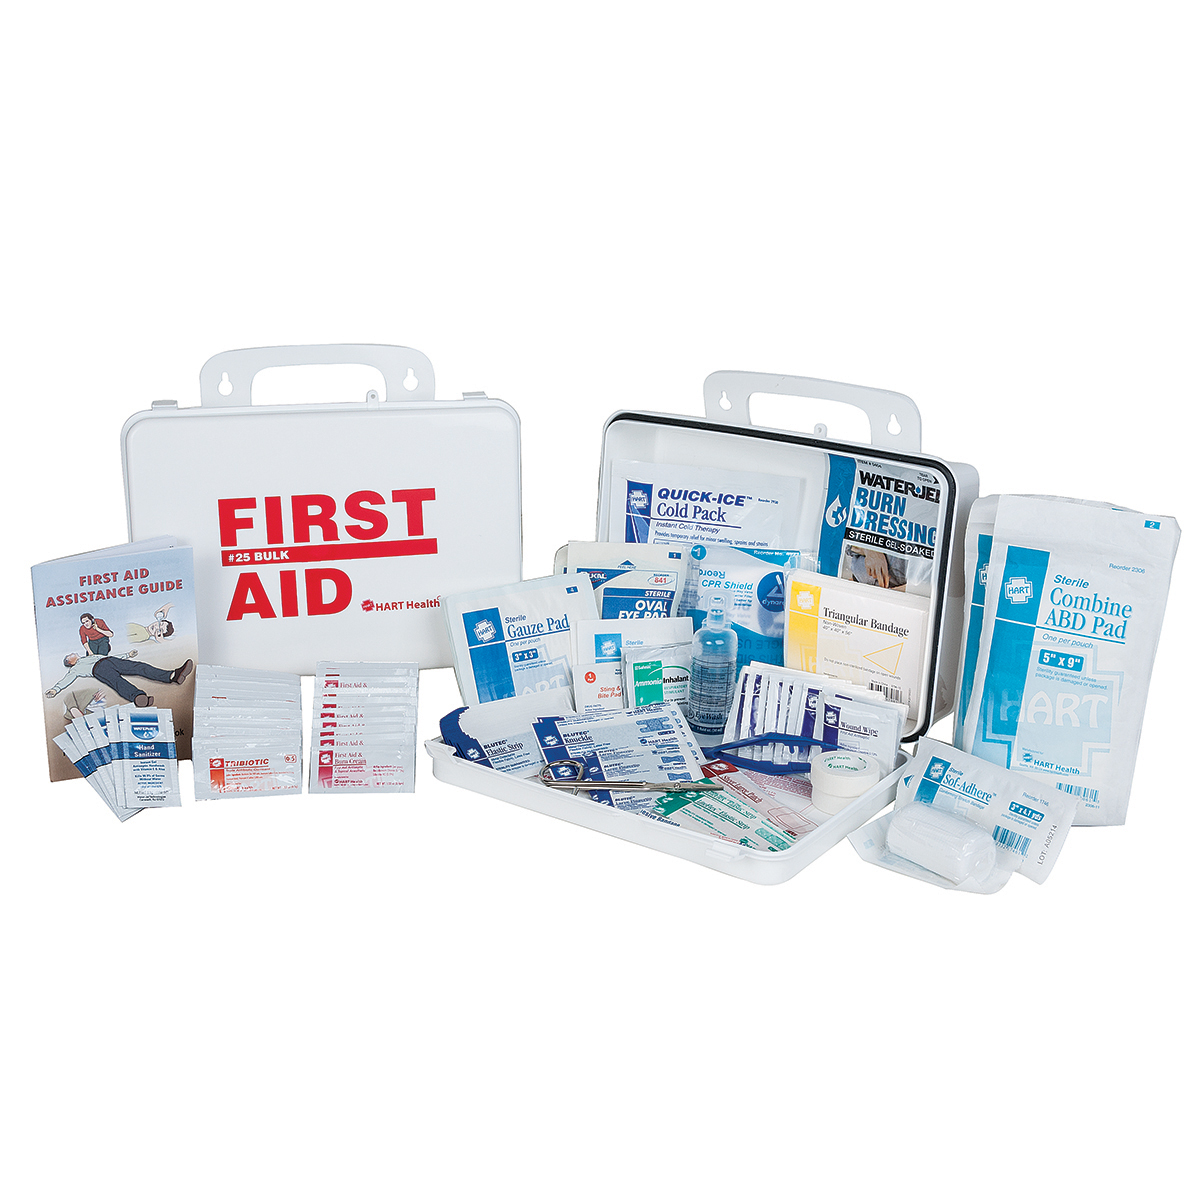 25 Bulk First Aid Kit, ANSI Class A, HART, Food Services